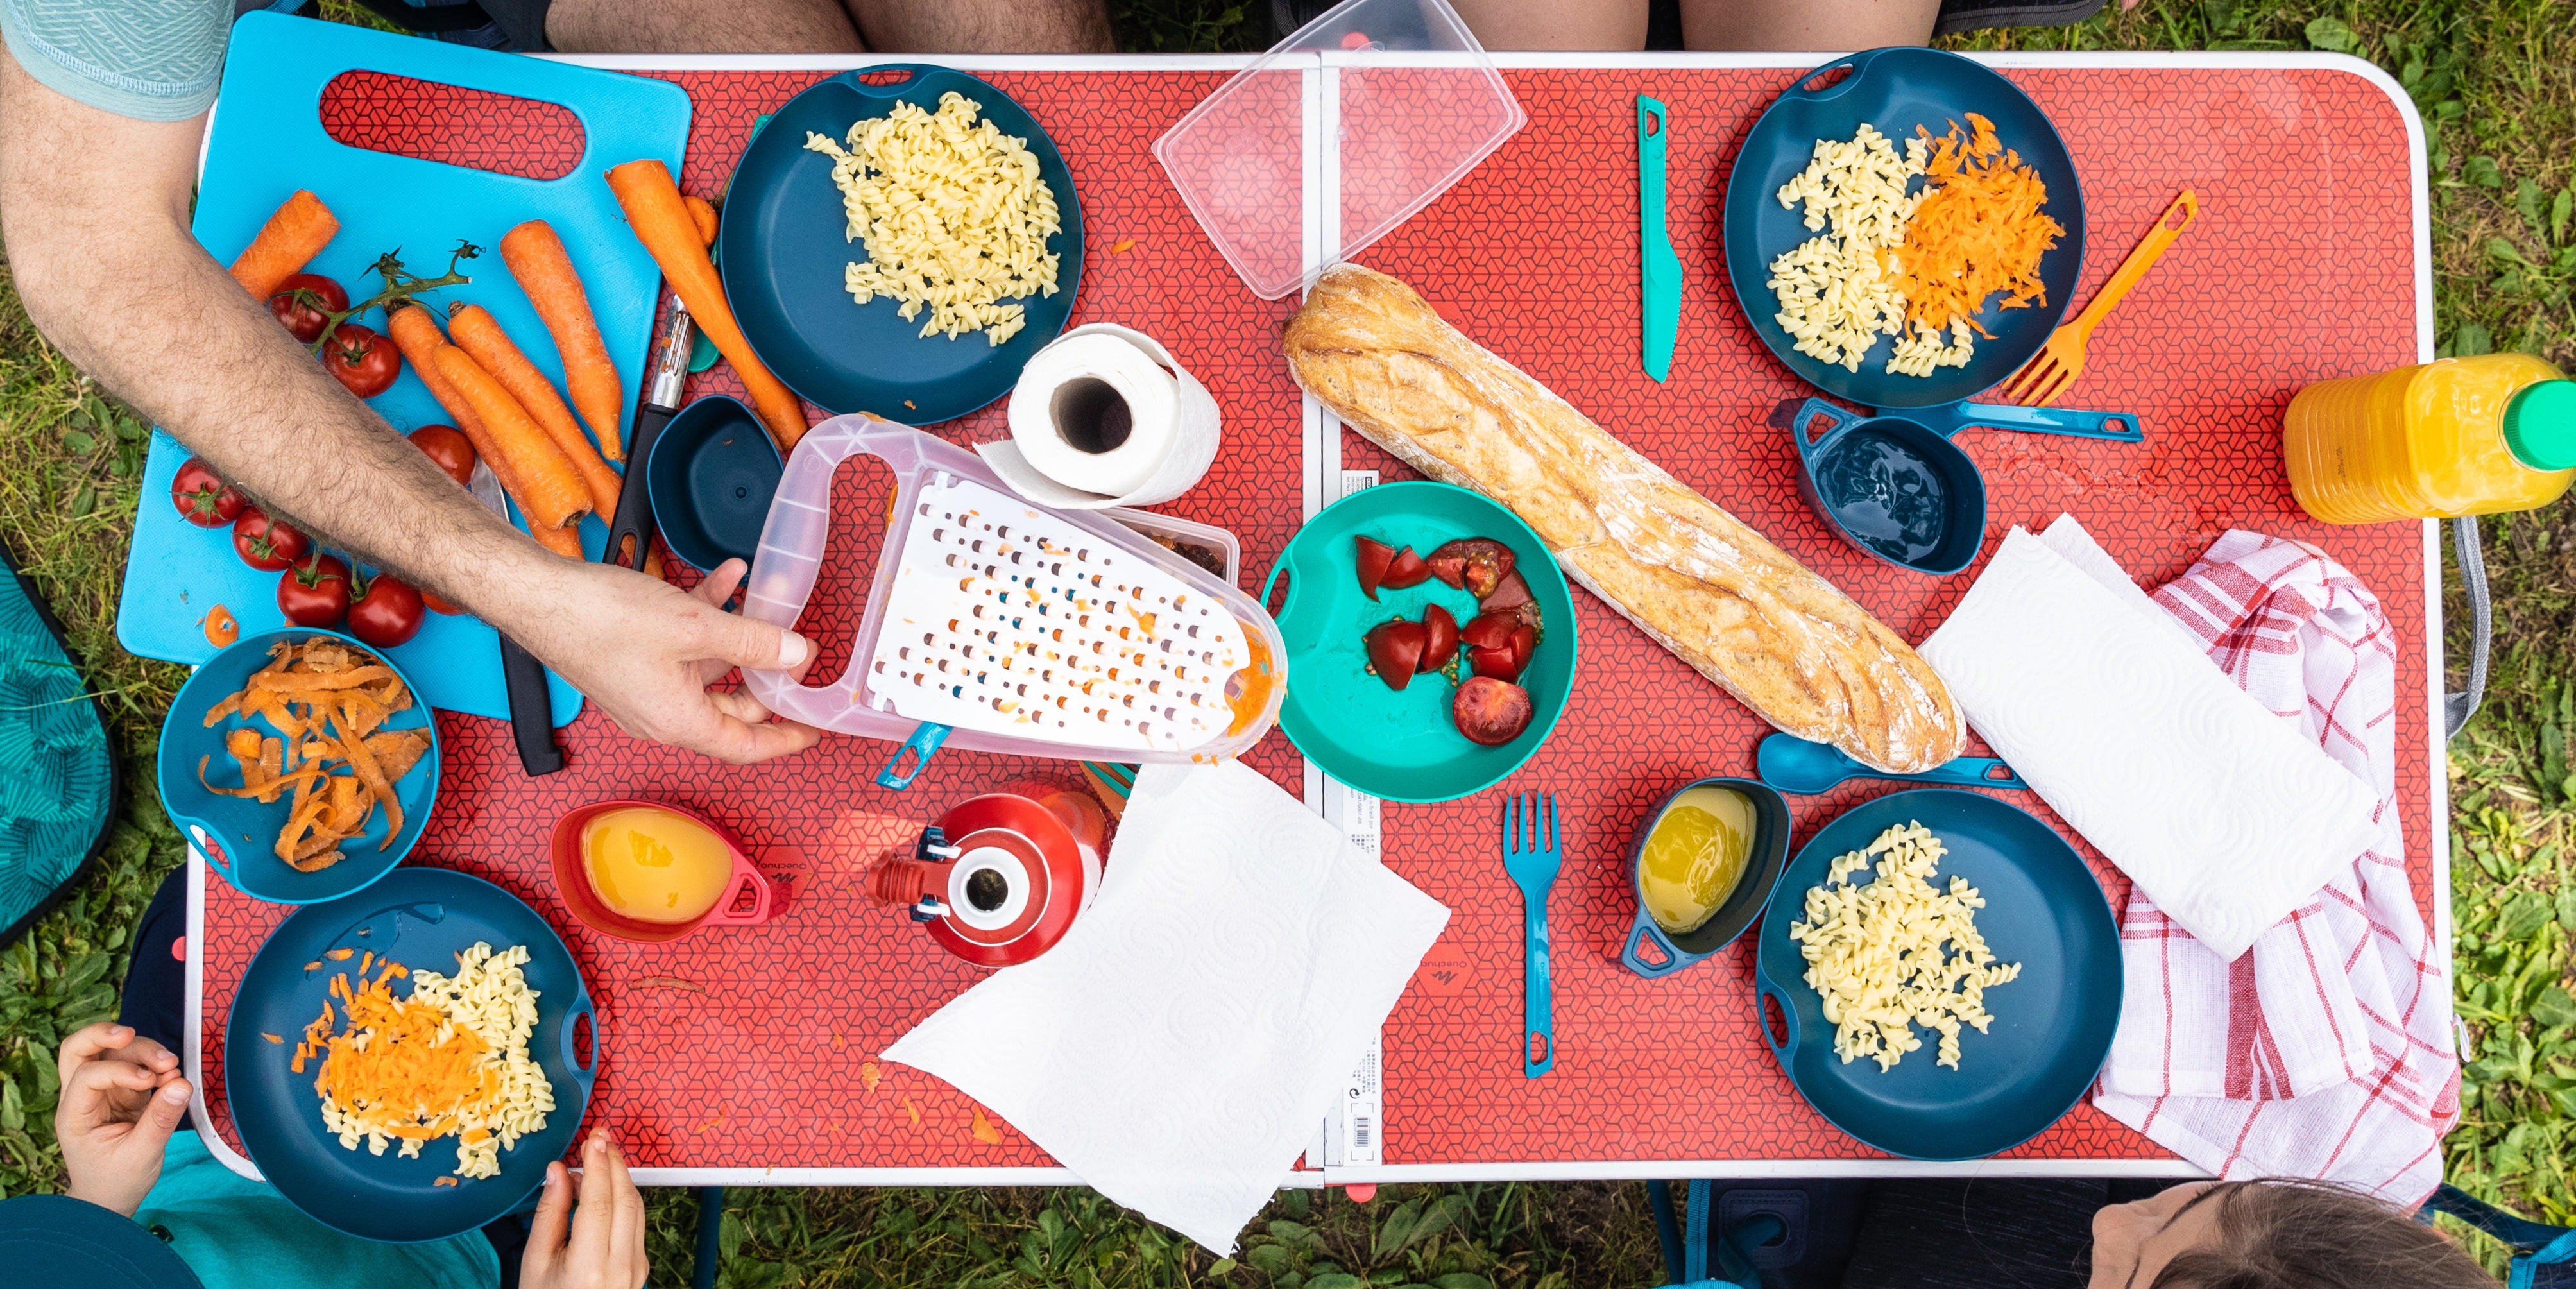 12 Camping Meal Ideas: A Campfire Menu